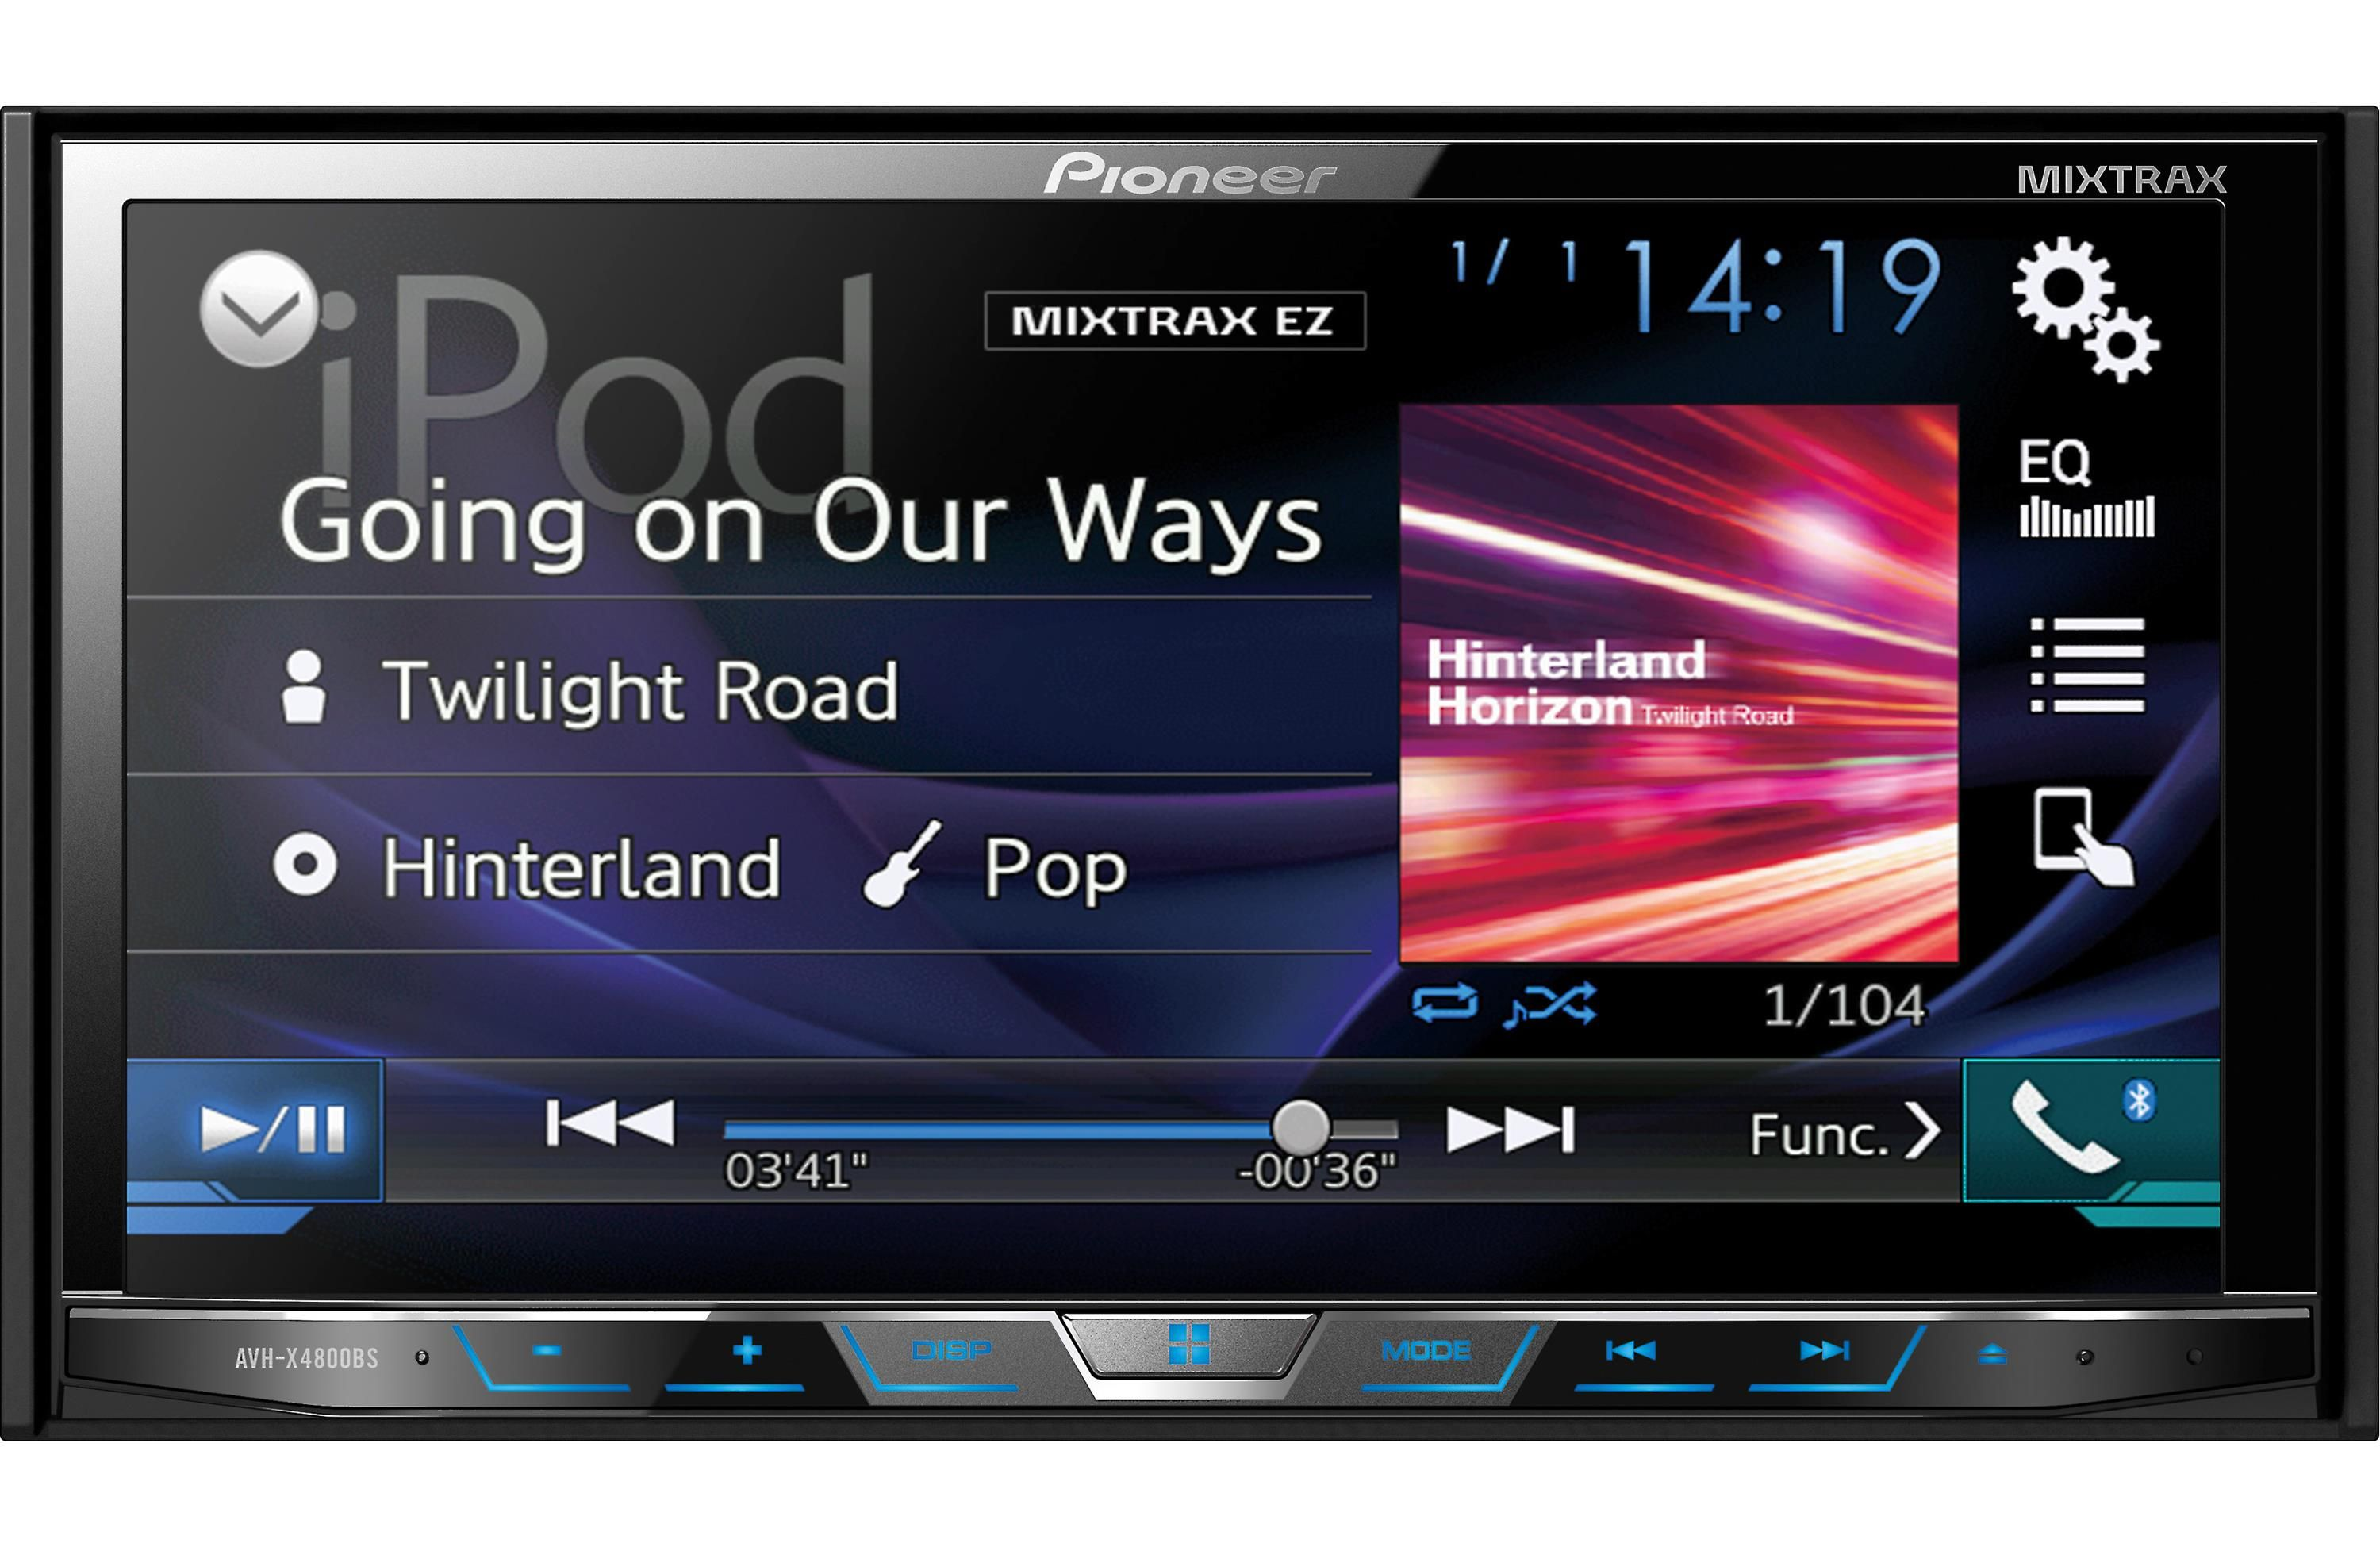 Crutchfield looks at the Pioneer AVH-X4800BS DVD receiver in